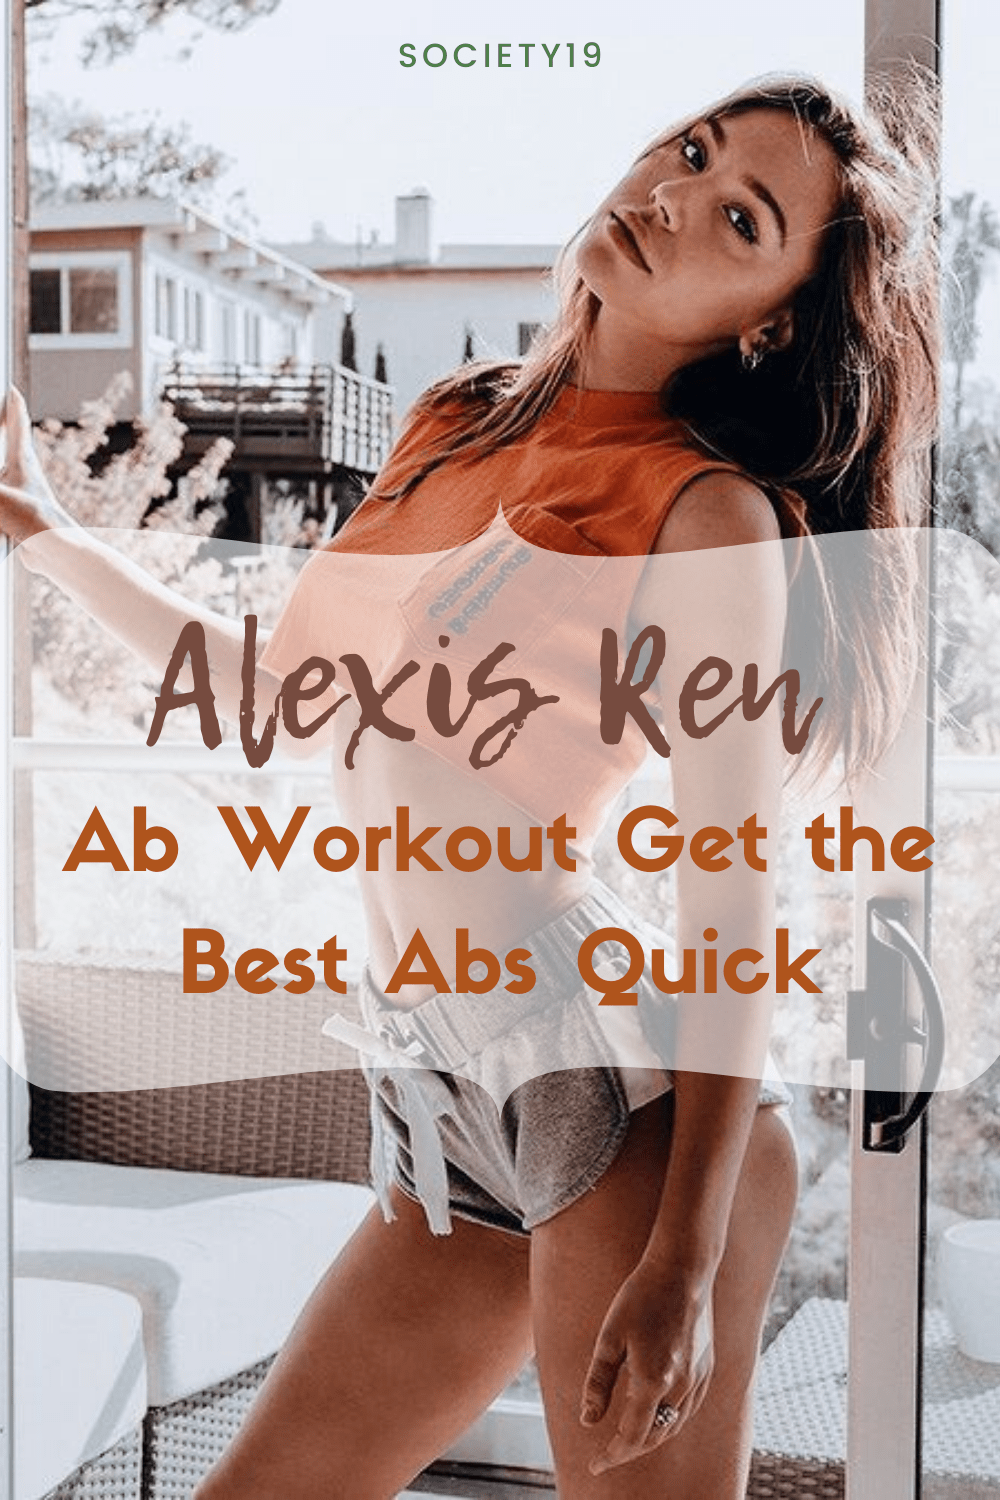 Alexis Ren Ab Workout Get the Best Abs Quick